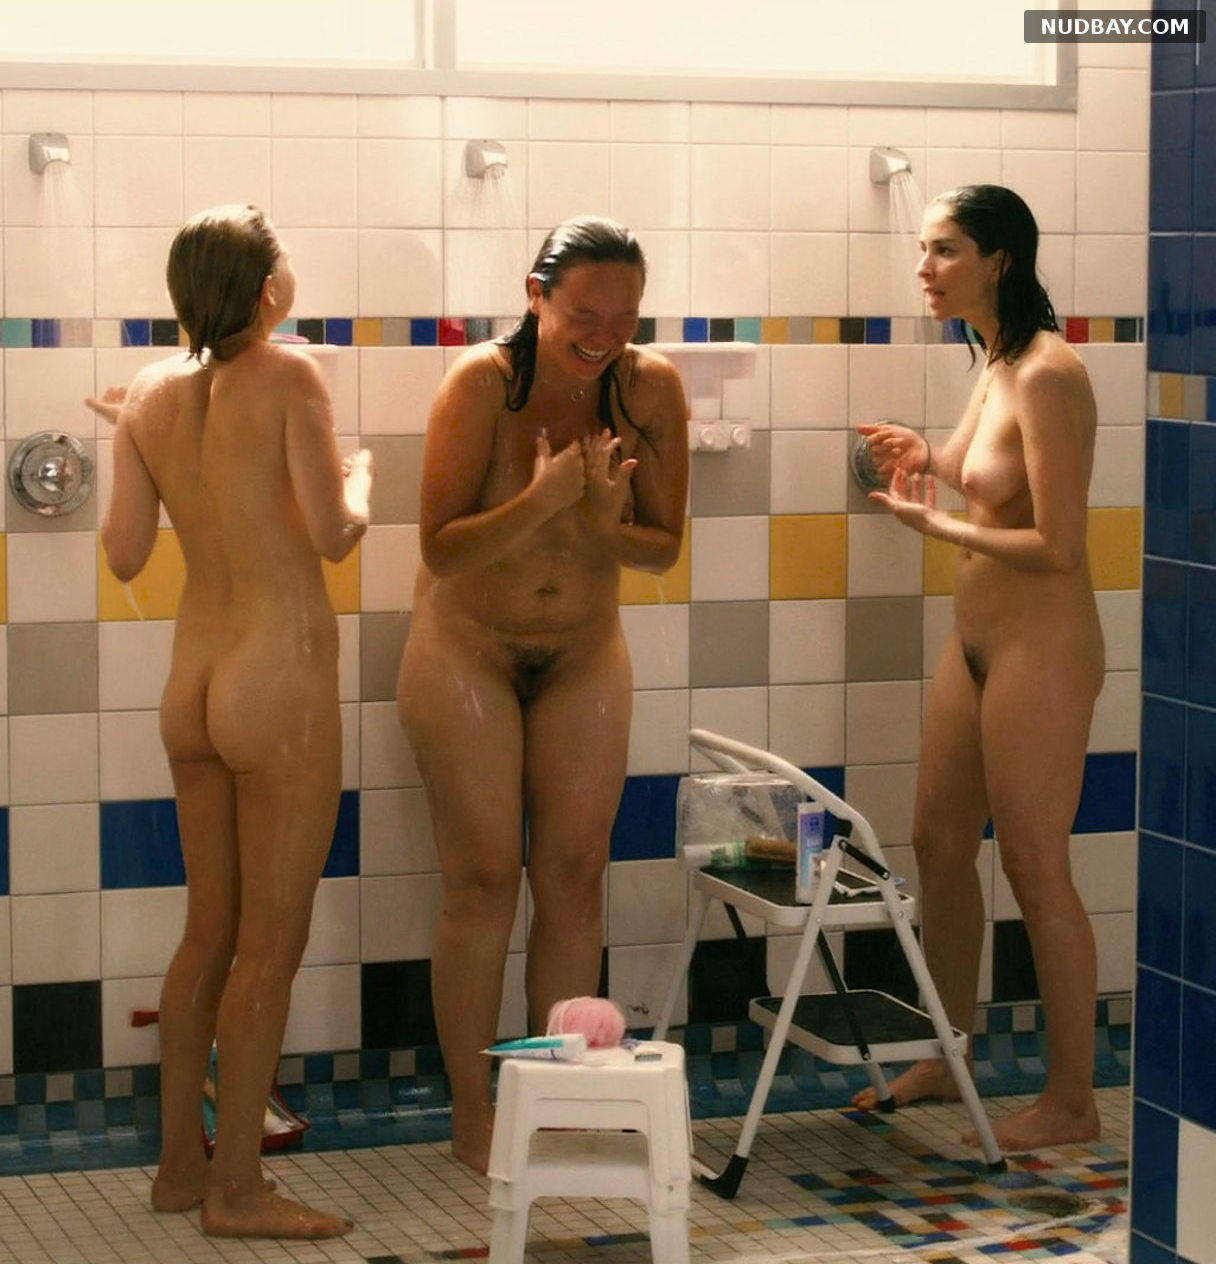 Michelle Williams Sarah Silverman nude in Take This Waltz (2011)